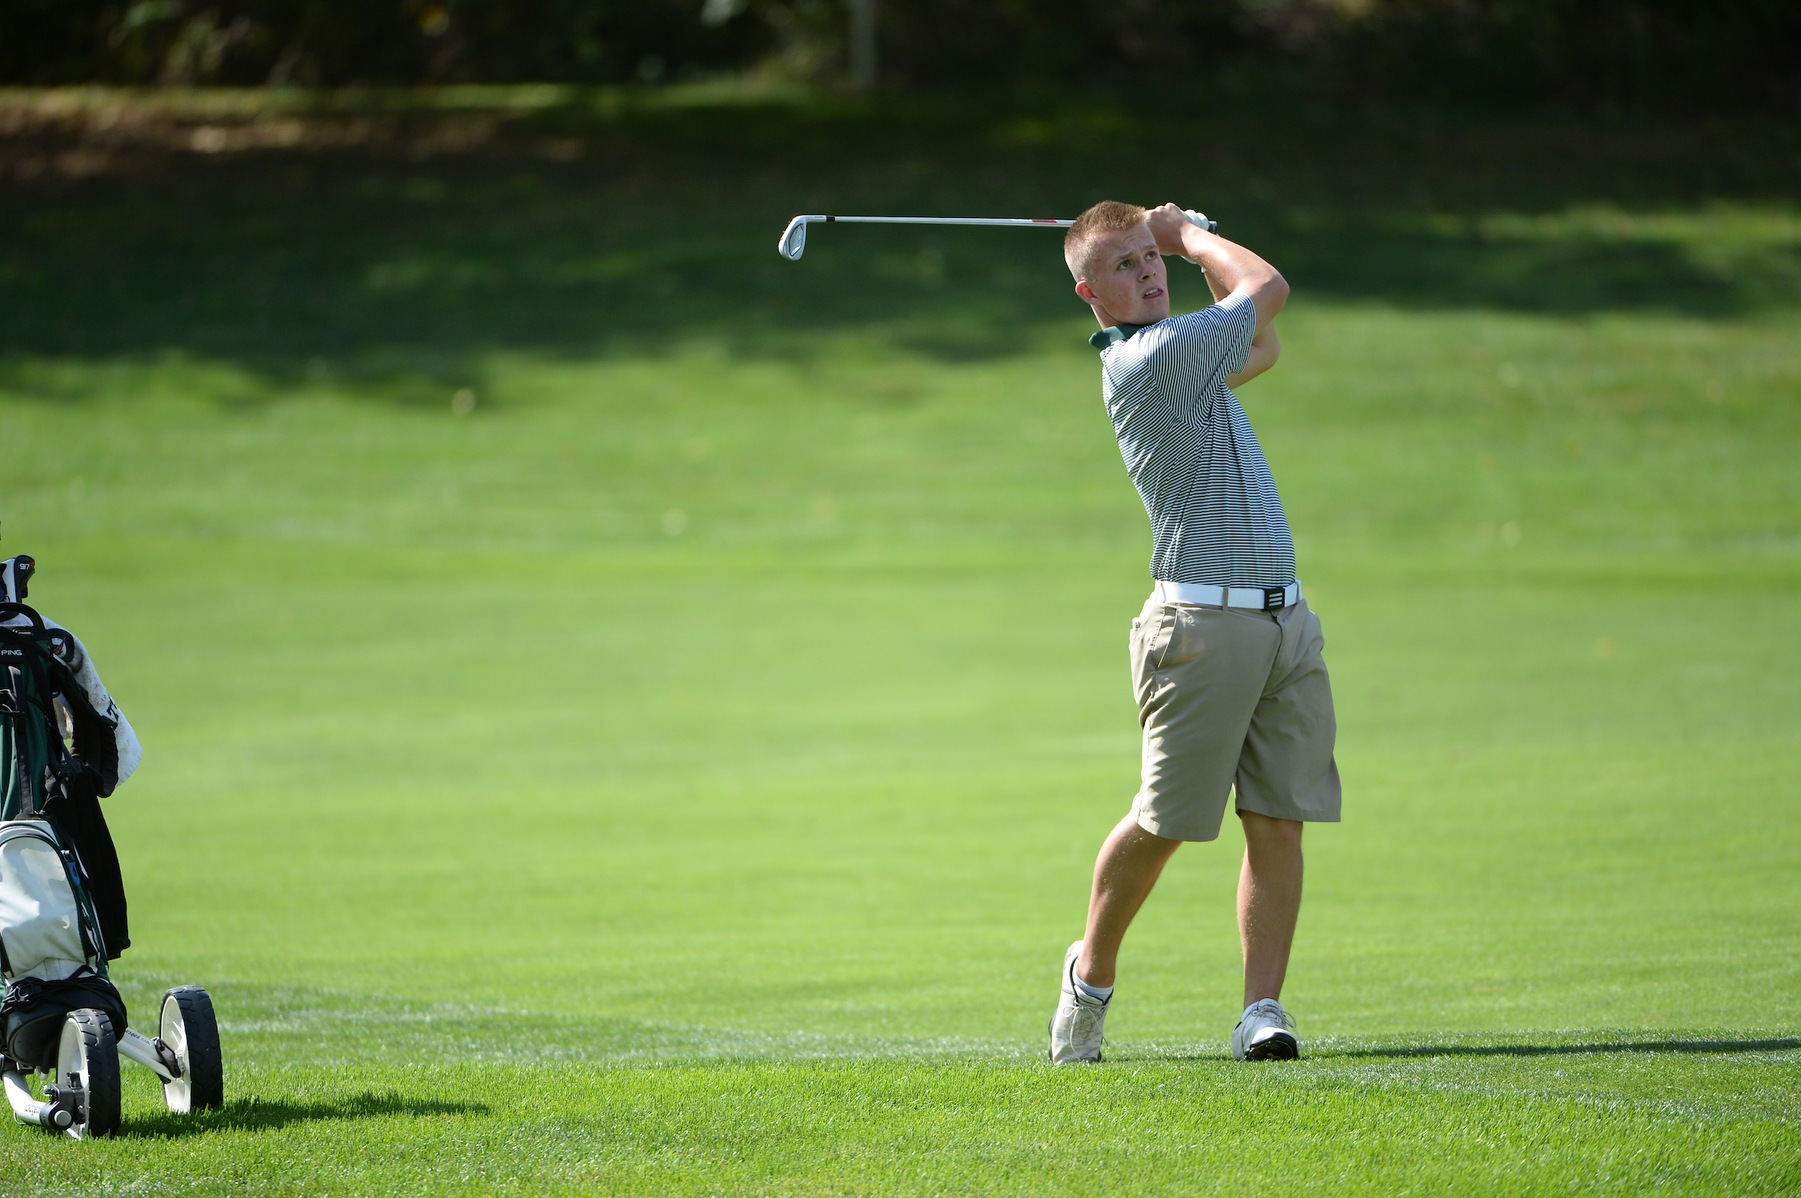 Maisel Shoots 74, Finishes Tied for 13th at Mason-Dixon Collegiate Classic